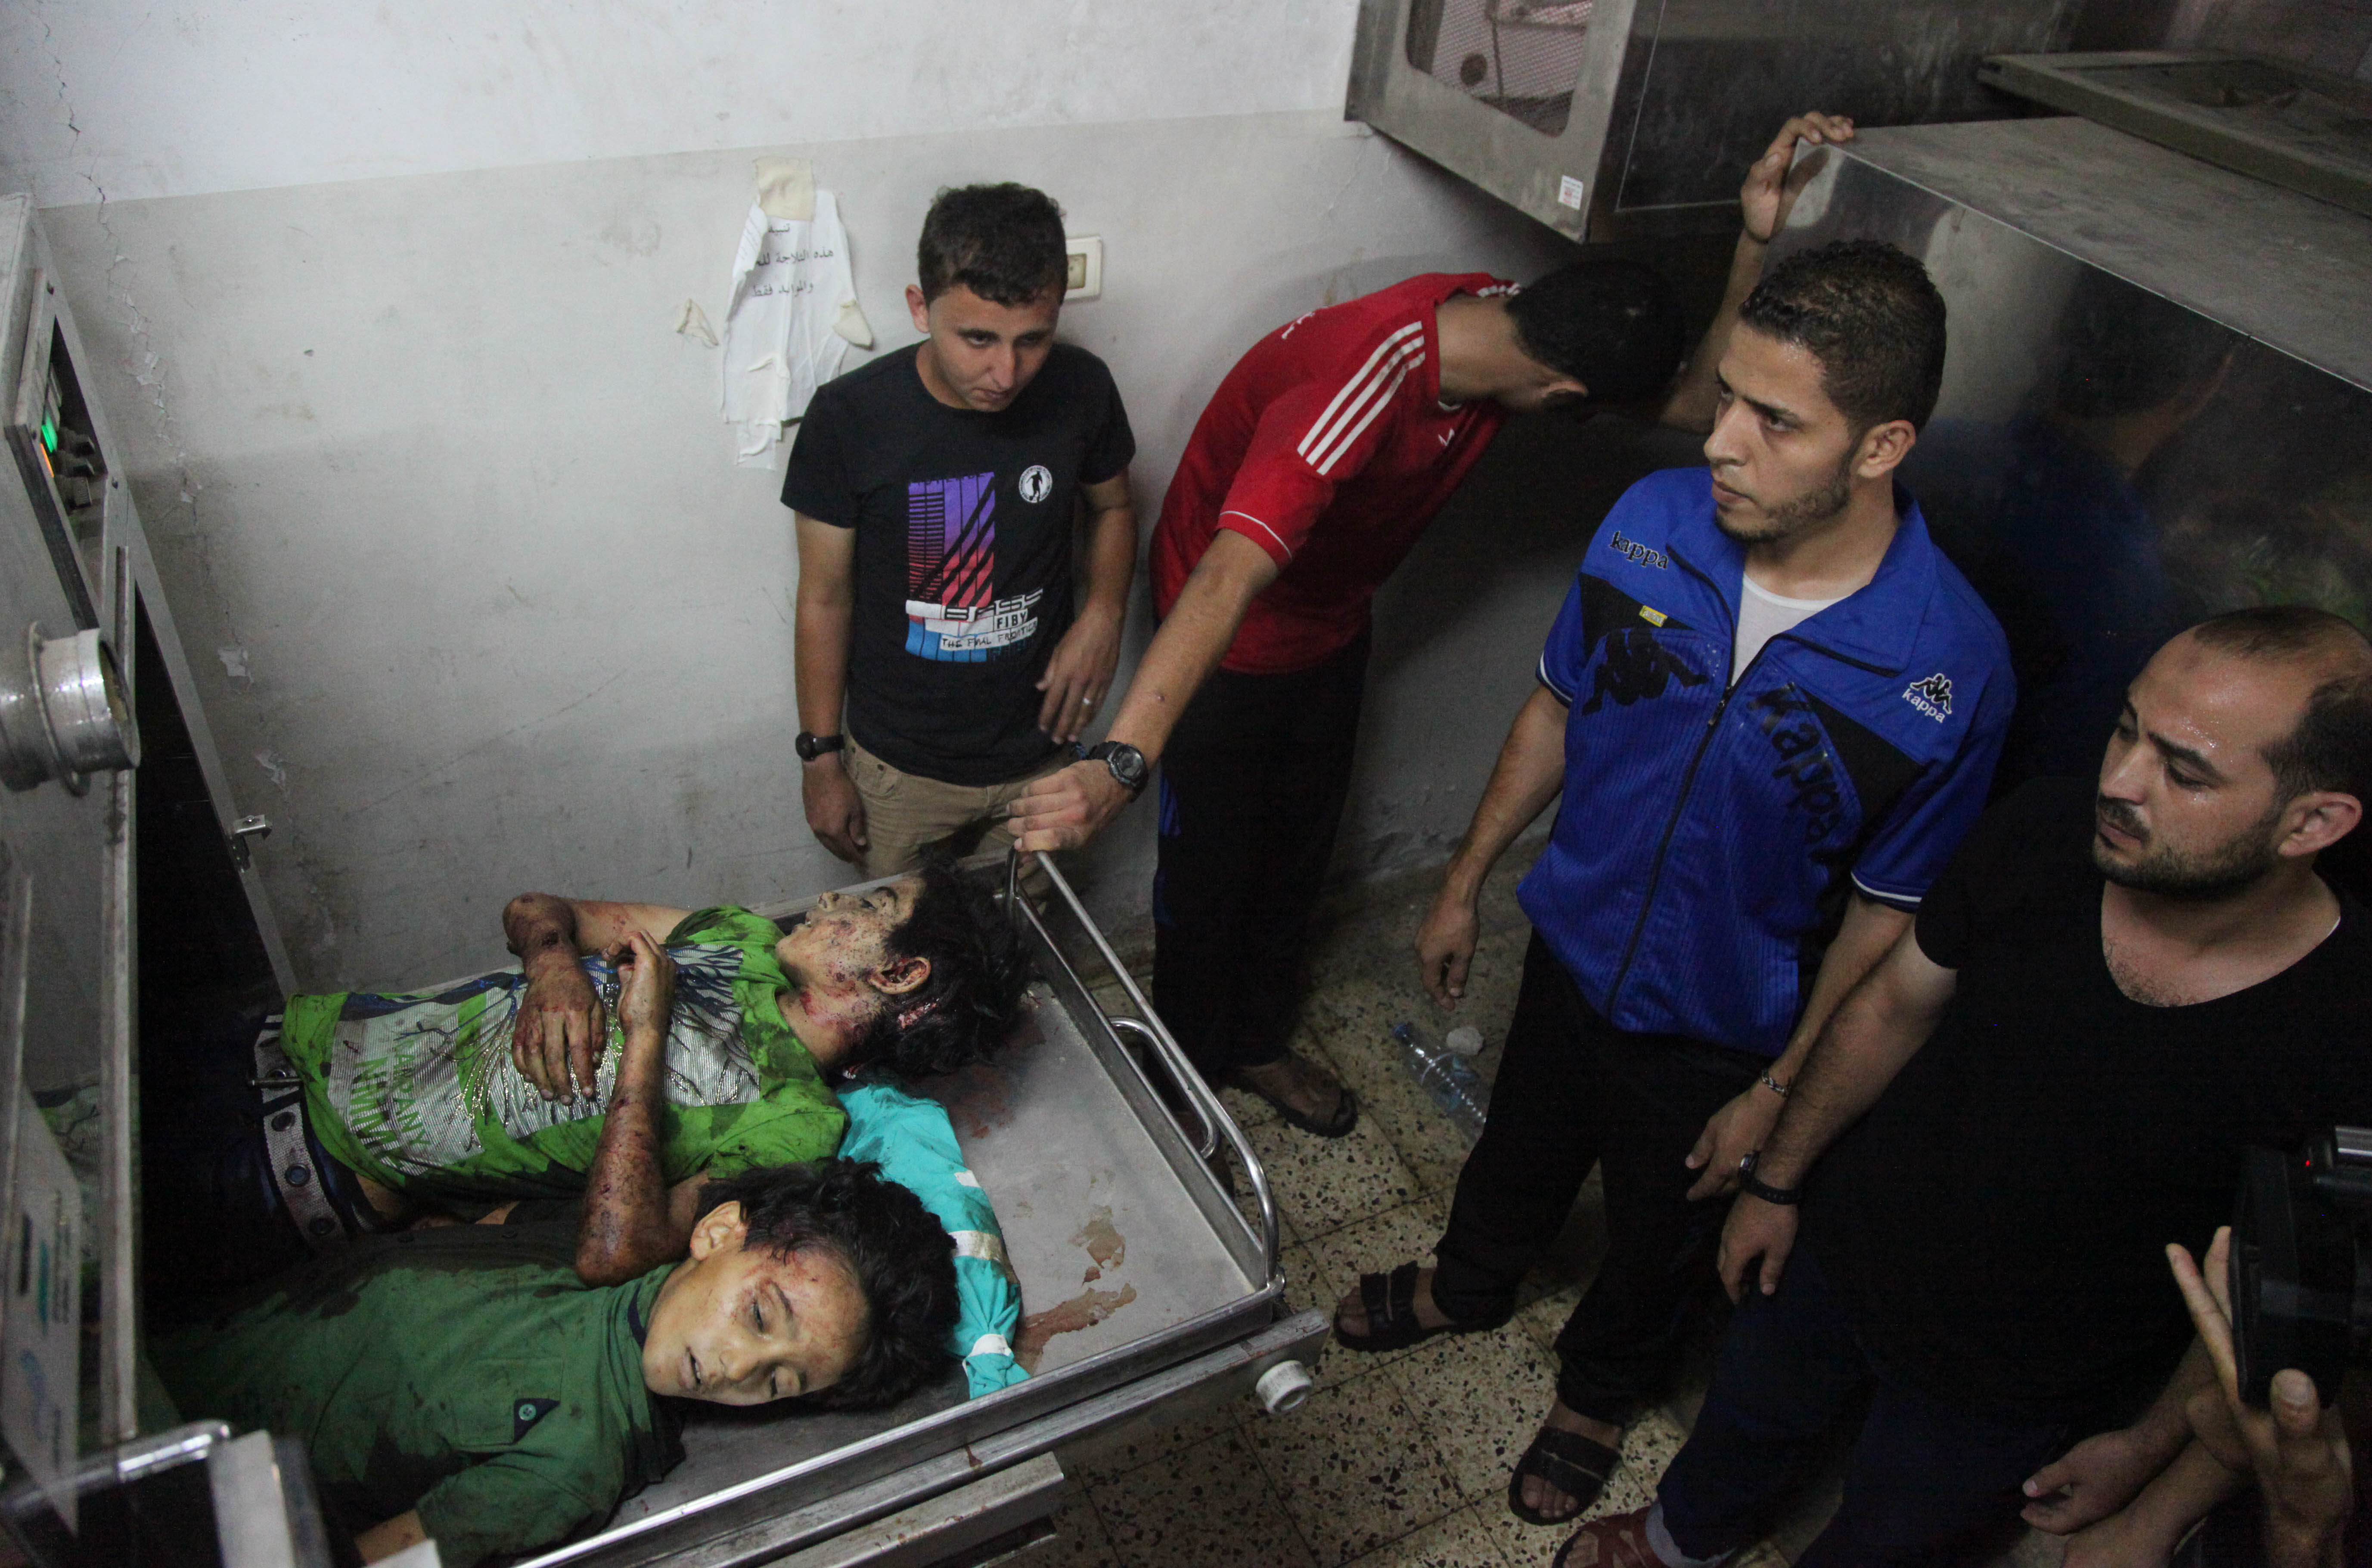 Palestinian men mourn over the bodies of six children who were killed in a explosion in a public playground in the beachfront Shati refugee camp in Gaza City on July 28, 2014. At least 10 Palestinians are killed and more than 40 are injured in two Israeli airstrikes in the Gaza Strip, medics say, adding that most of the casualties are children. (Photo credit: Mohammed Zaanoun)